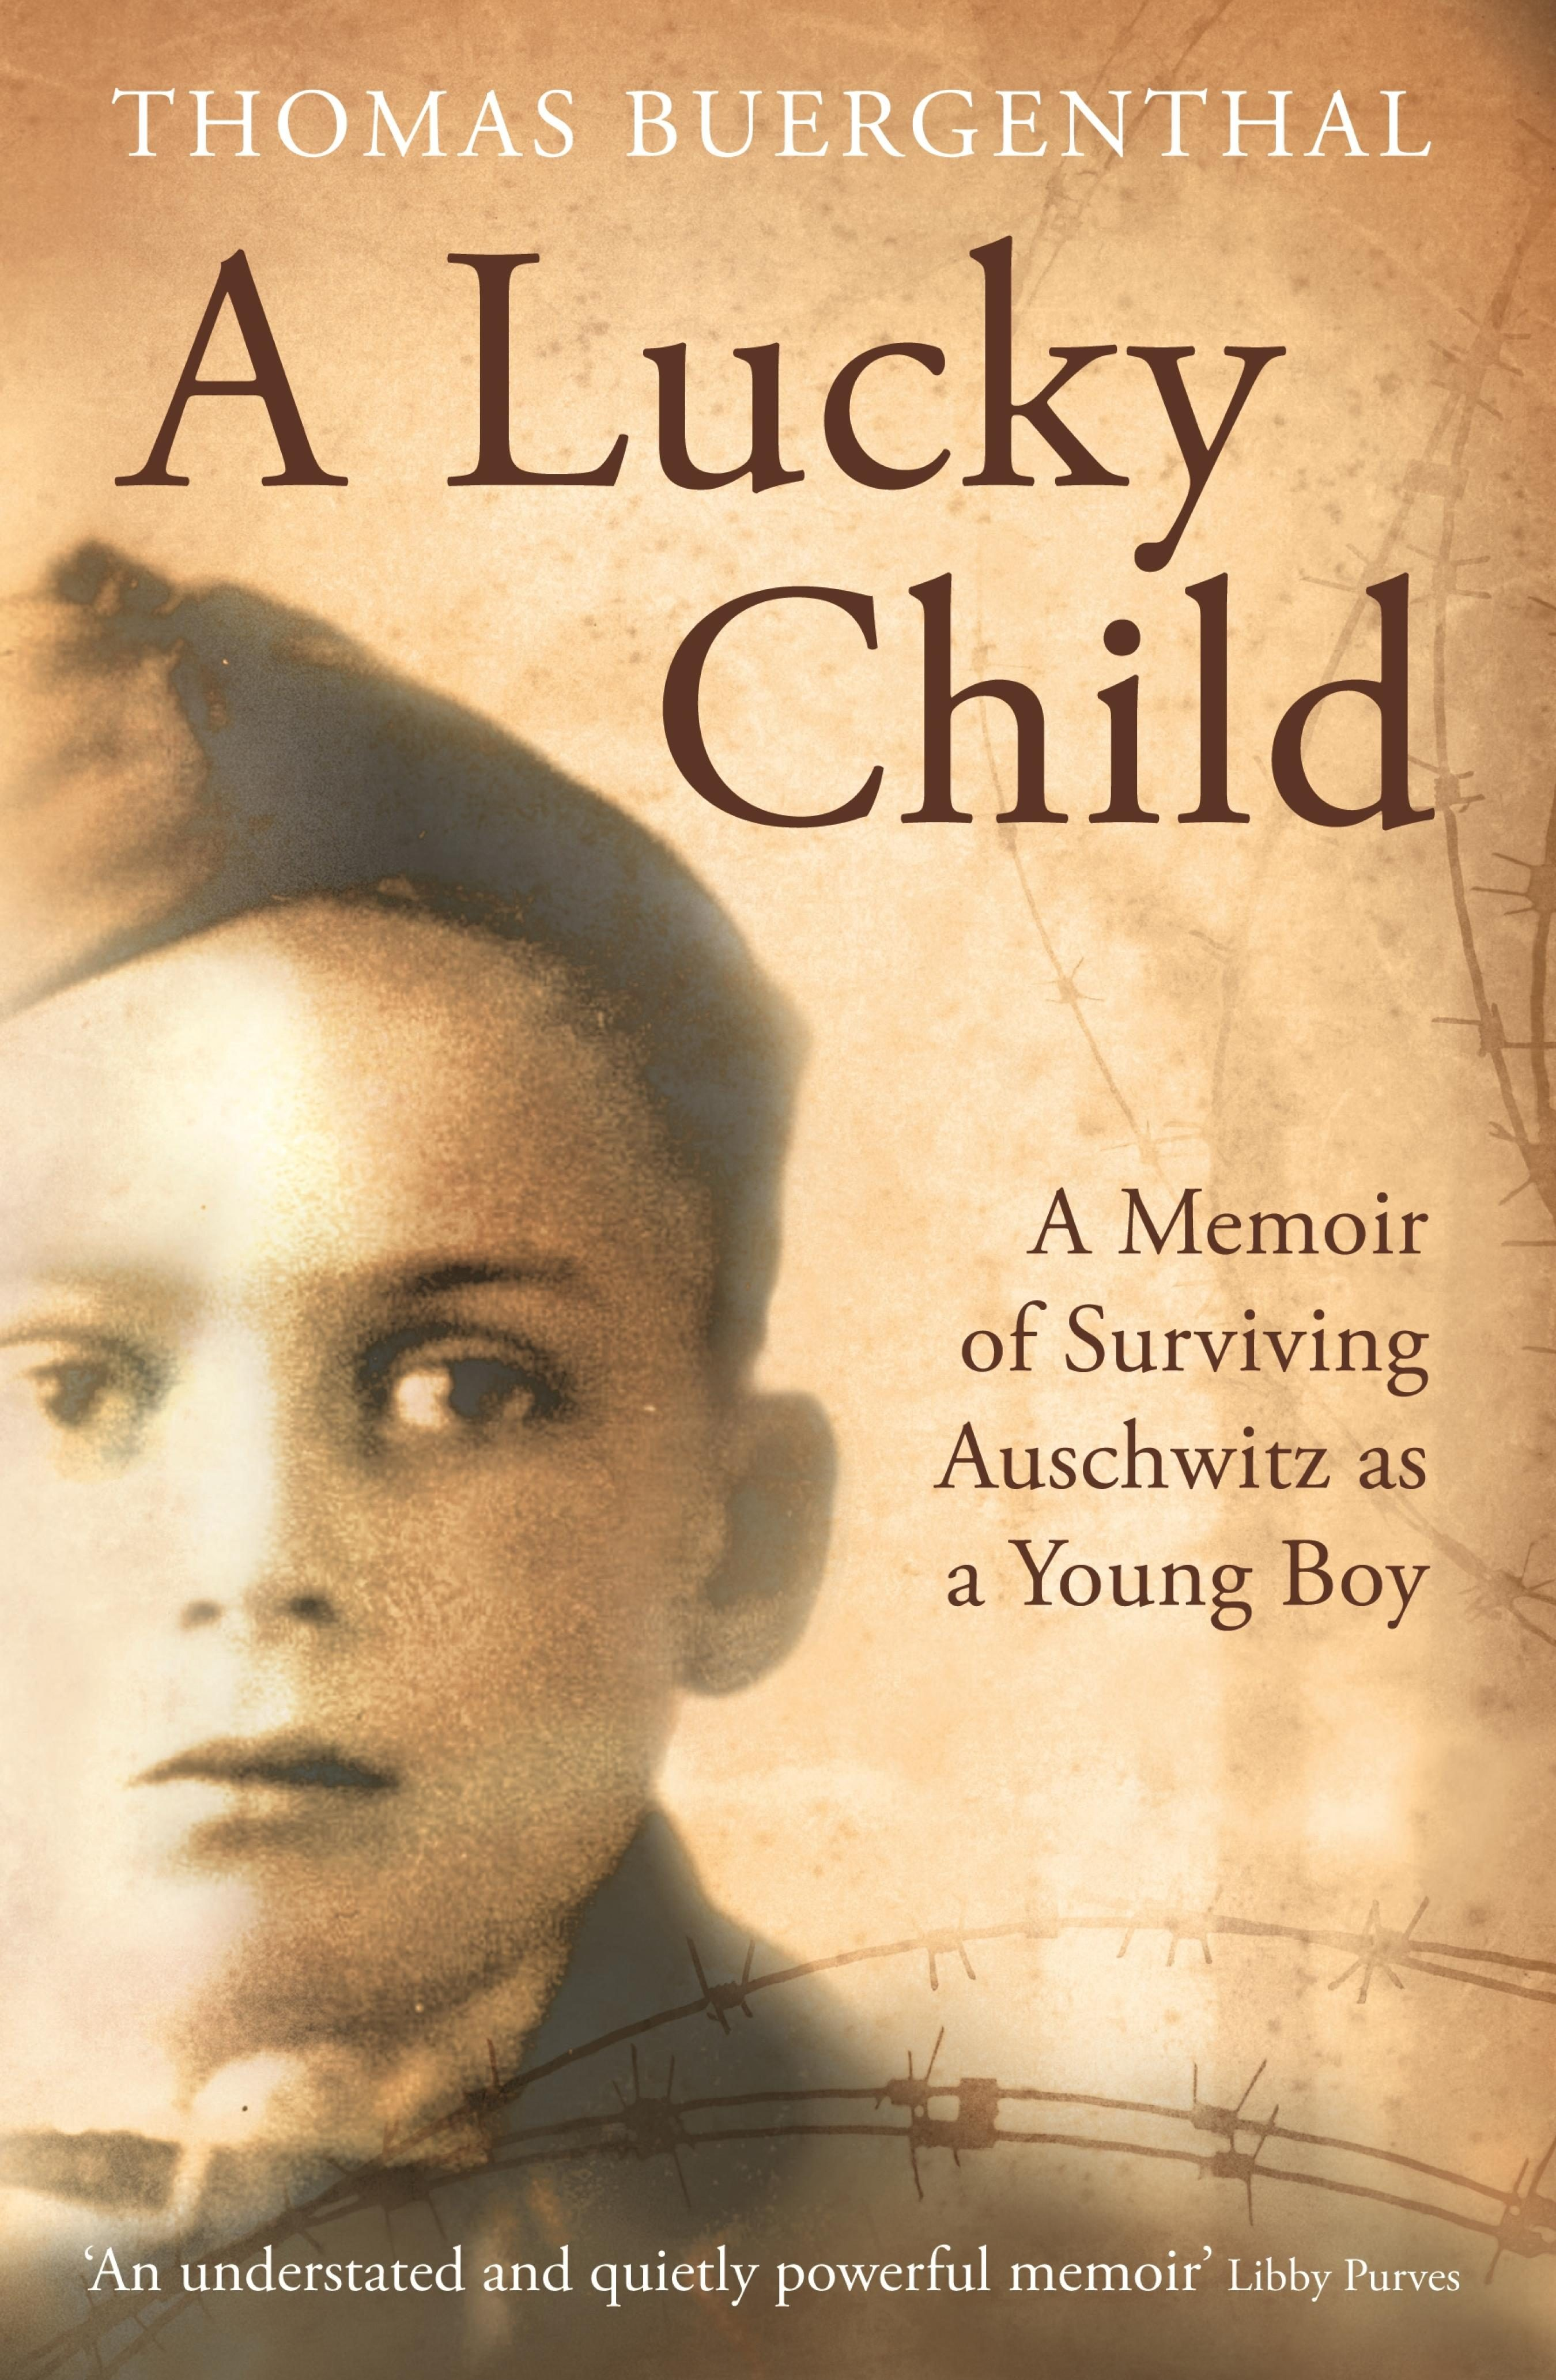 A lucky child ebook thomas buergenthal descargar libro pdf o a lucky child ebook thomas buergenthal 9781847651846 fandeluxe Gallery